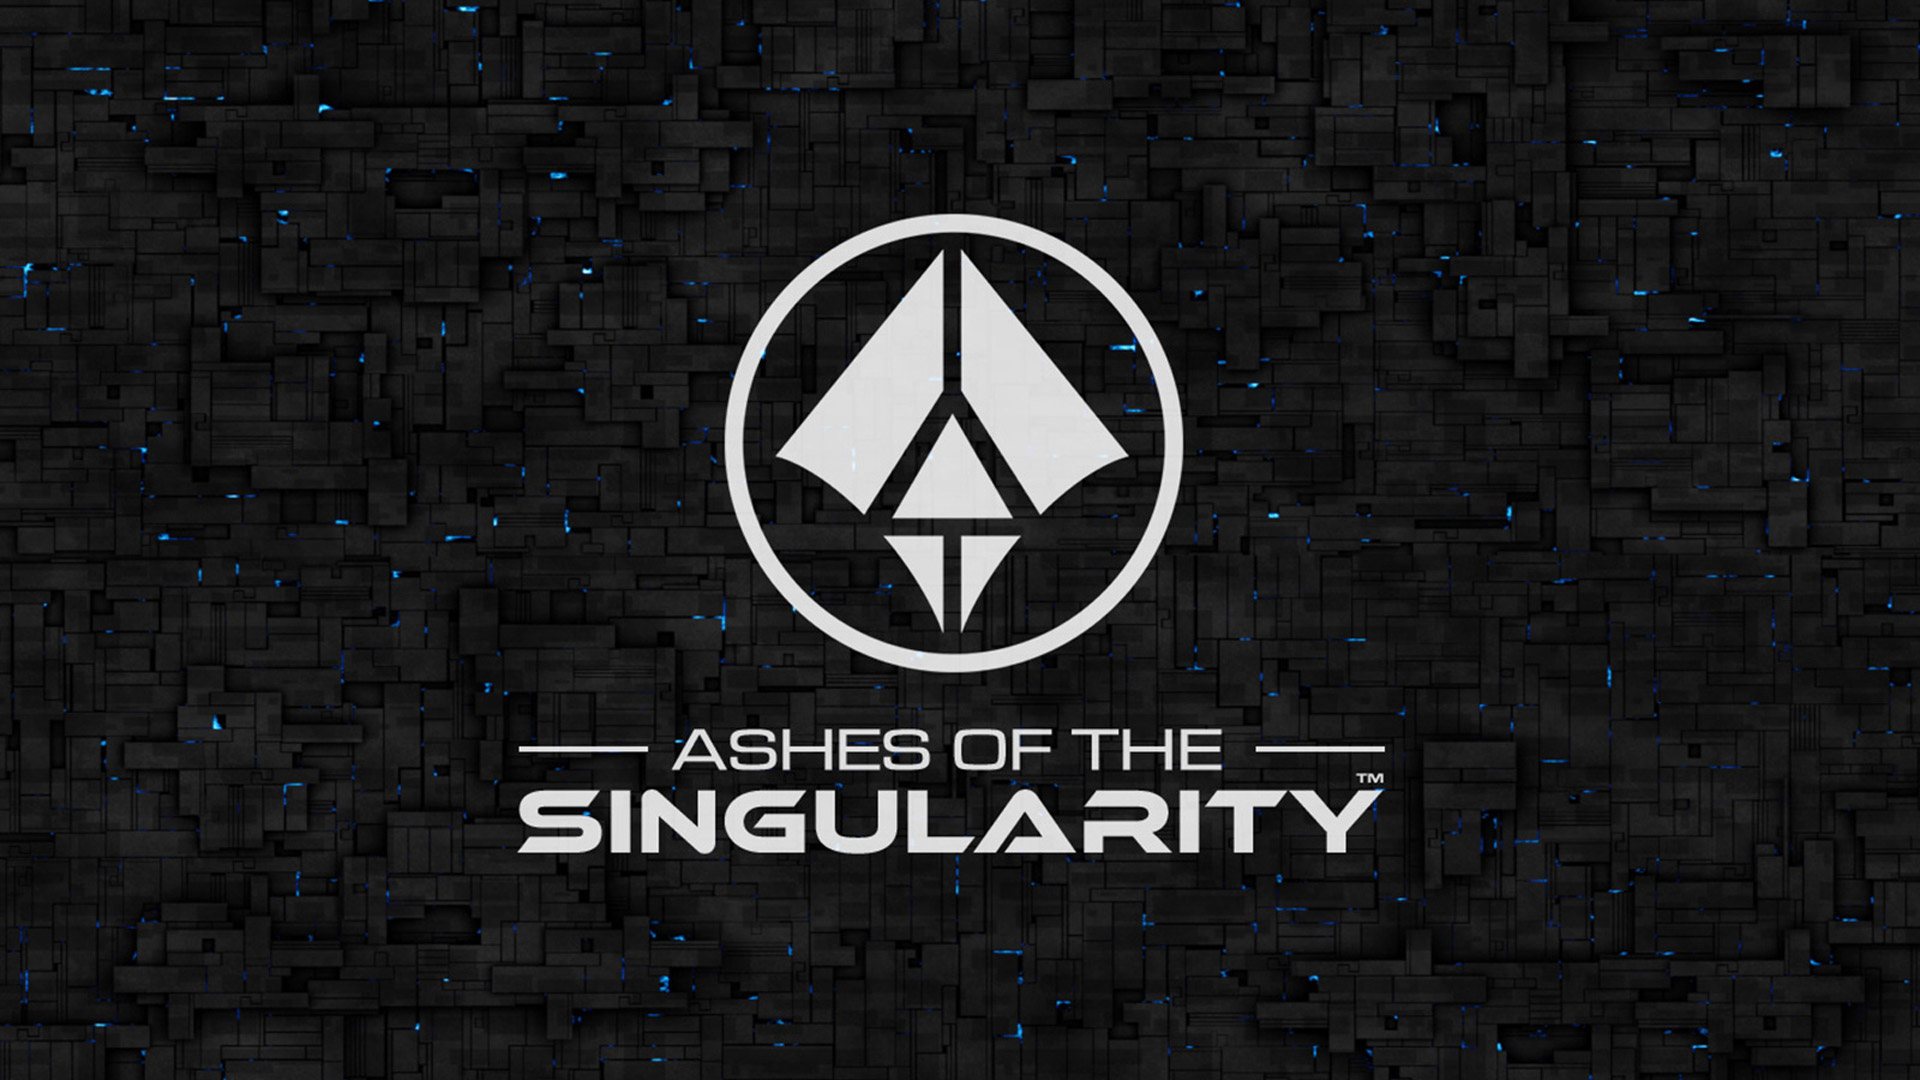 Free Ashes of the Singularity Wallpaper in 1920x1080